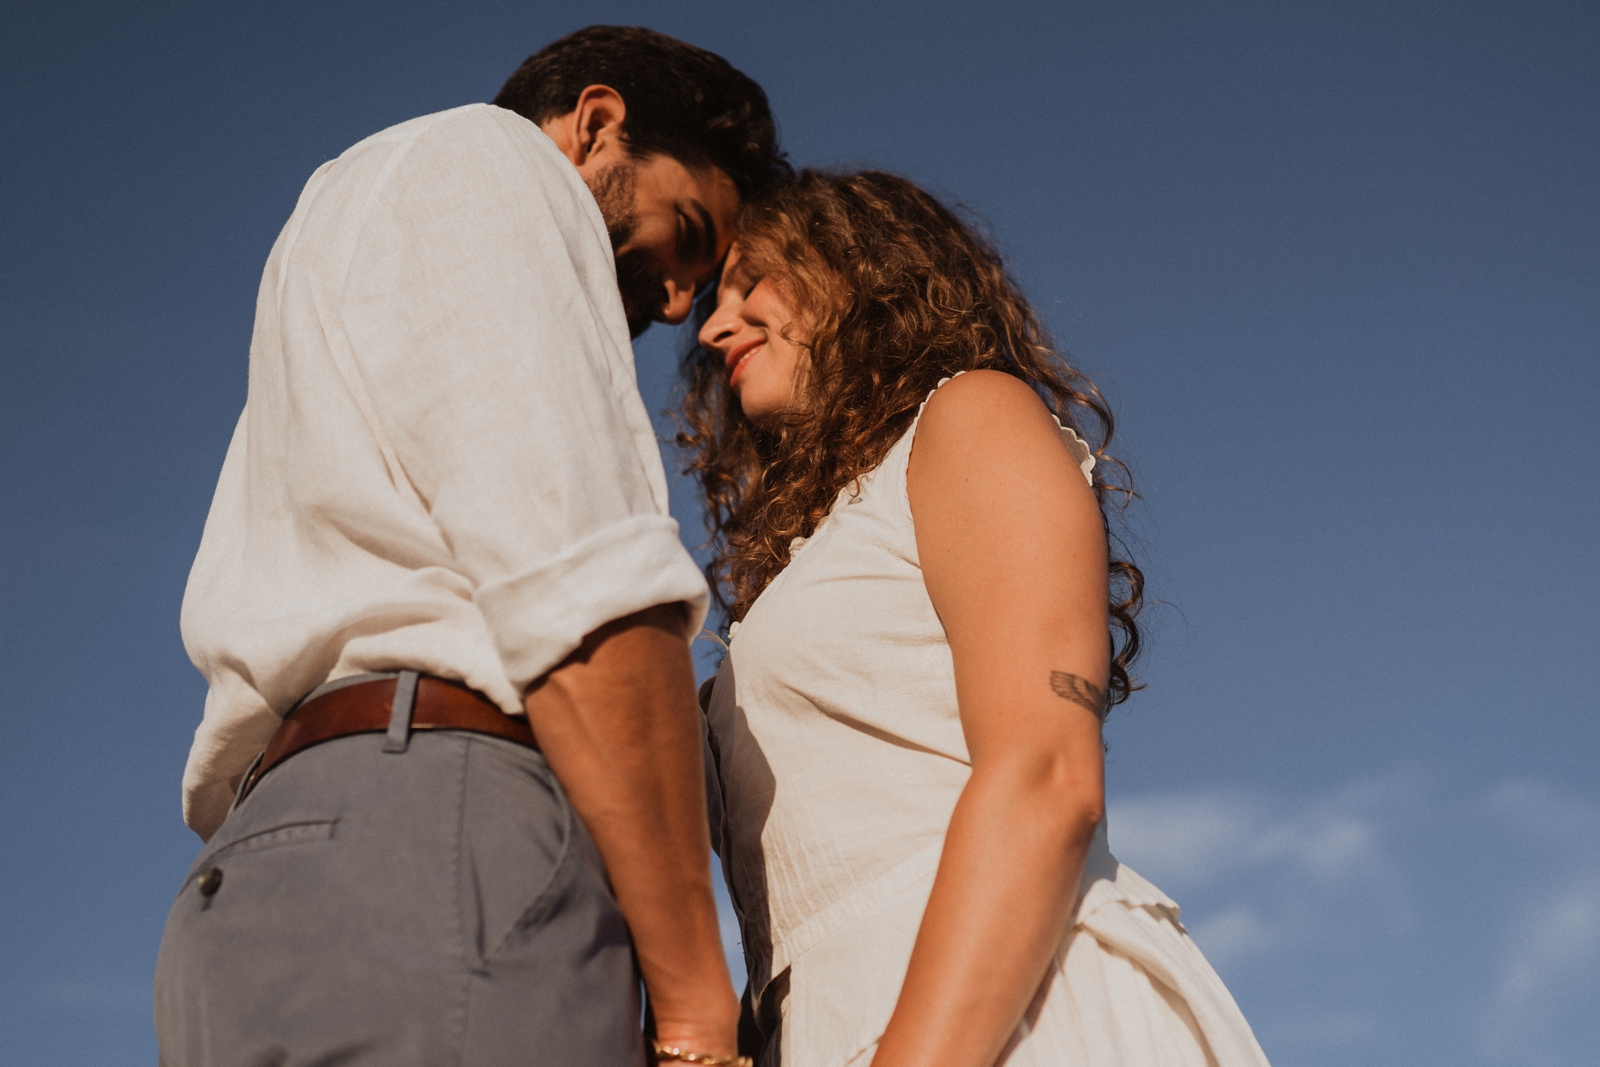 JJP_Nikki & Bud_Shadmoor_Montauk_NY_Cliff Engagement Session35.jpg_blog.jpg